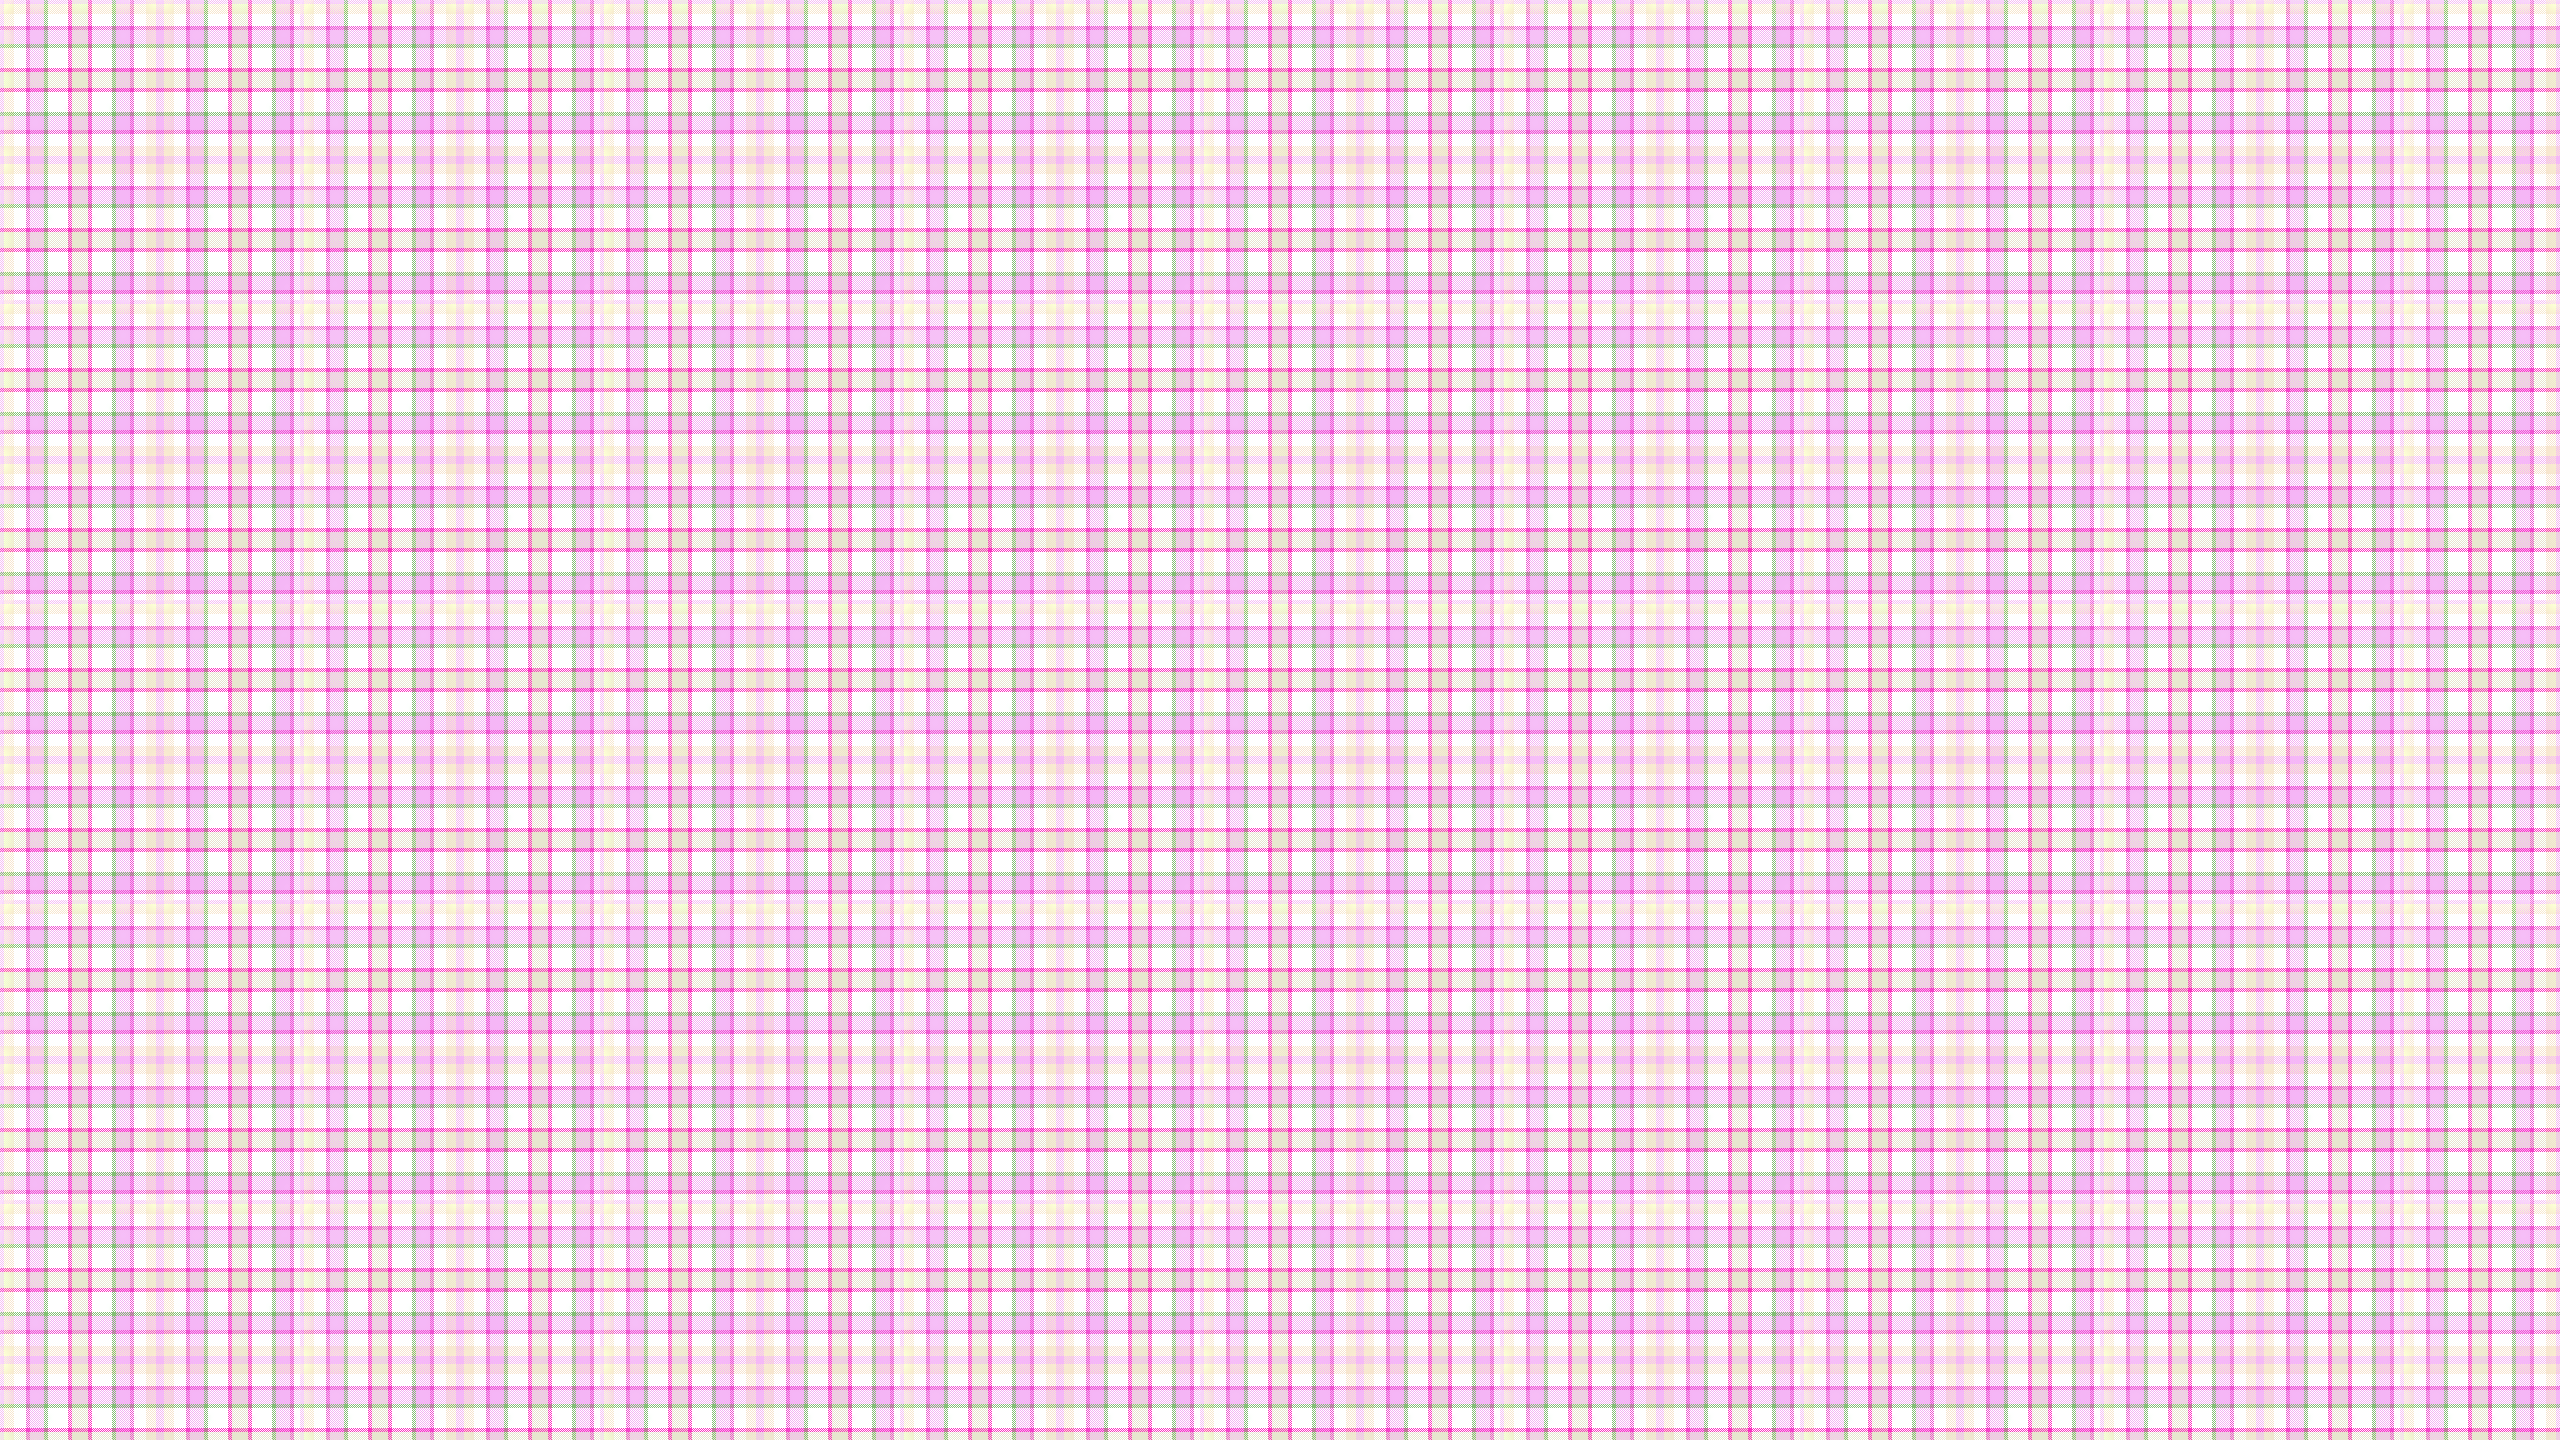 Tartan Wallpapers in Best 2560x1440 px Resolutions | Linnie Gail B.SCB Wallpapers